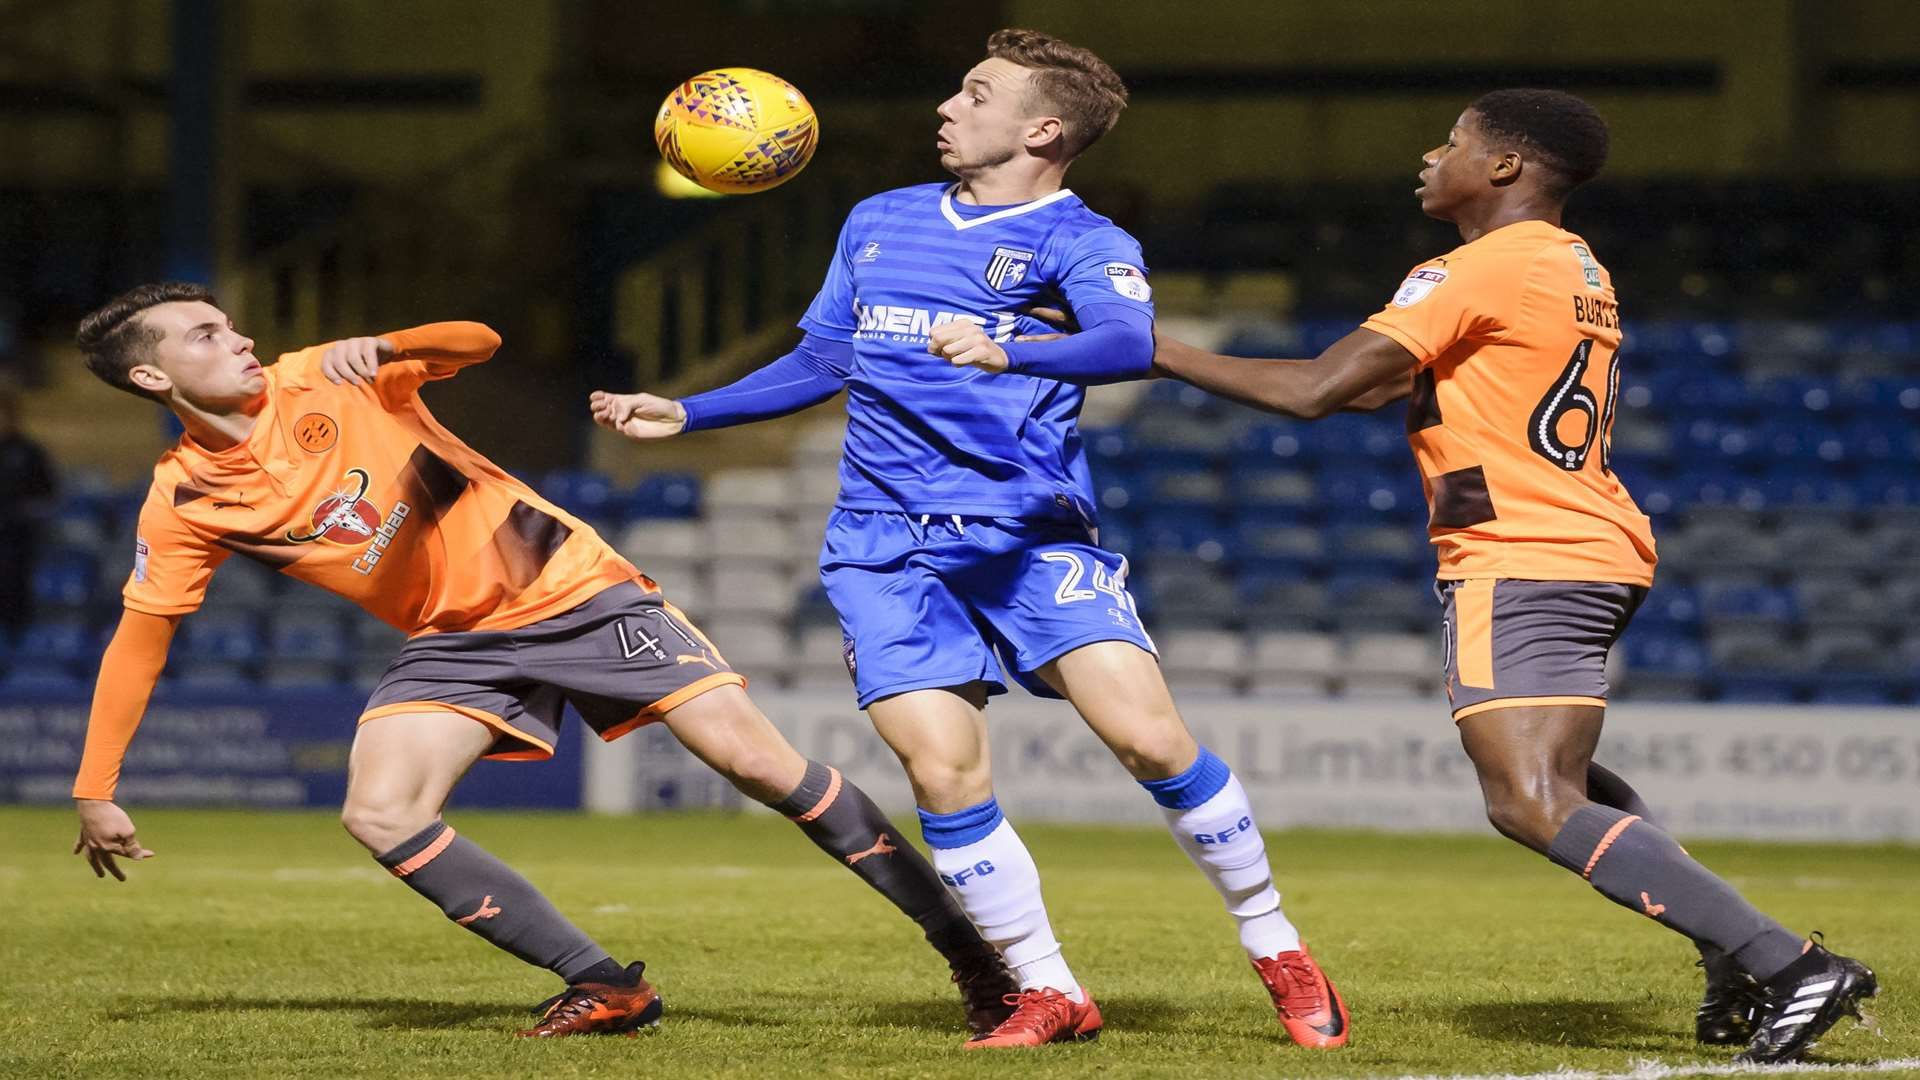 Gillingham's Greg Cundle battles for the ball against Reading. Picture: Andy Payton